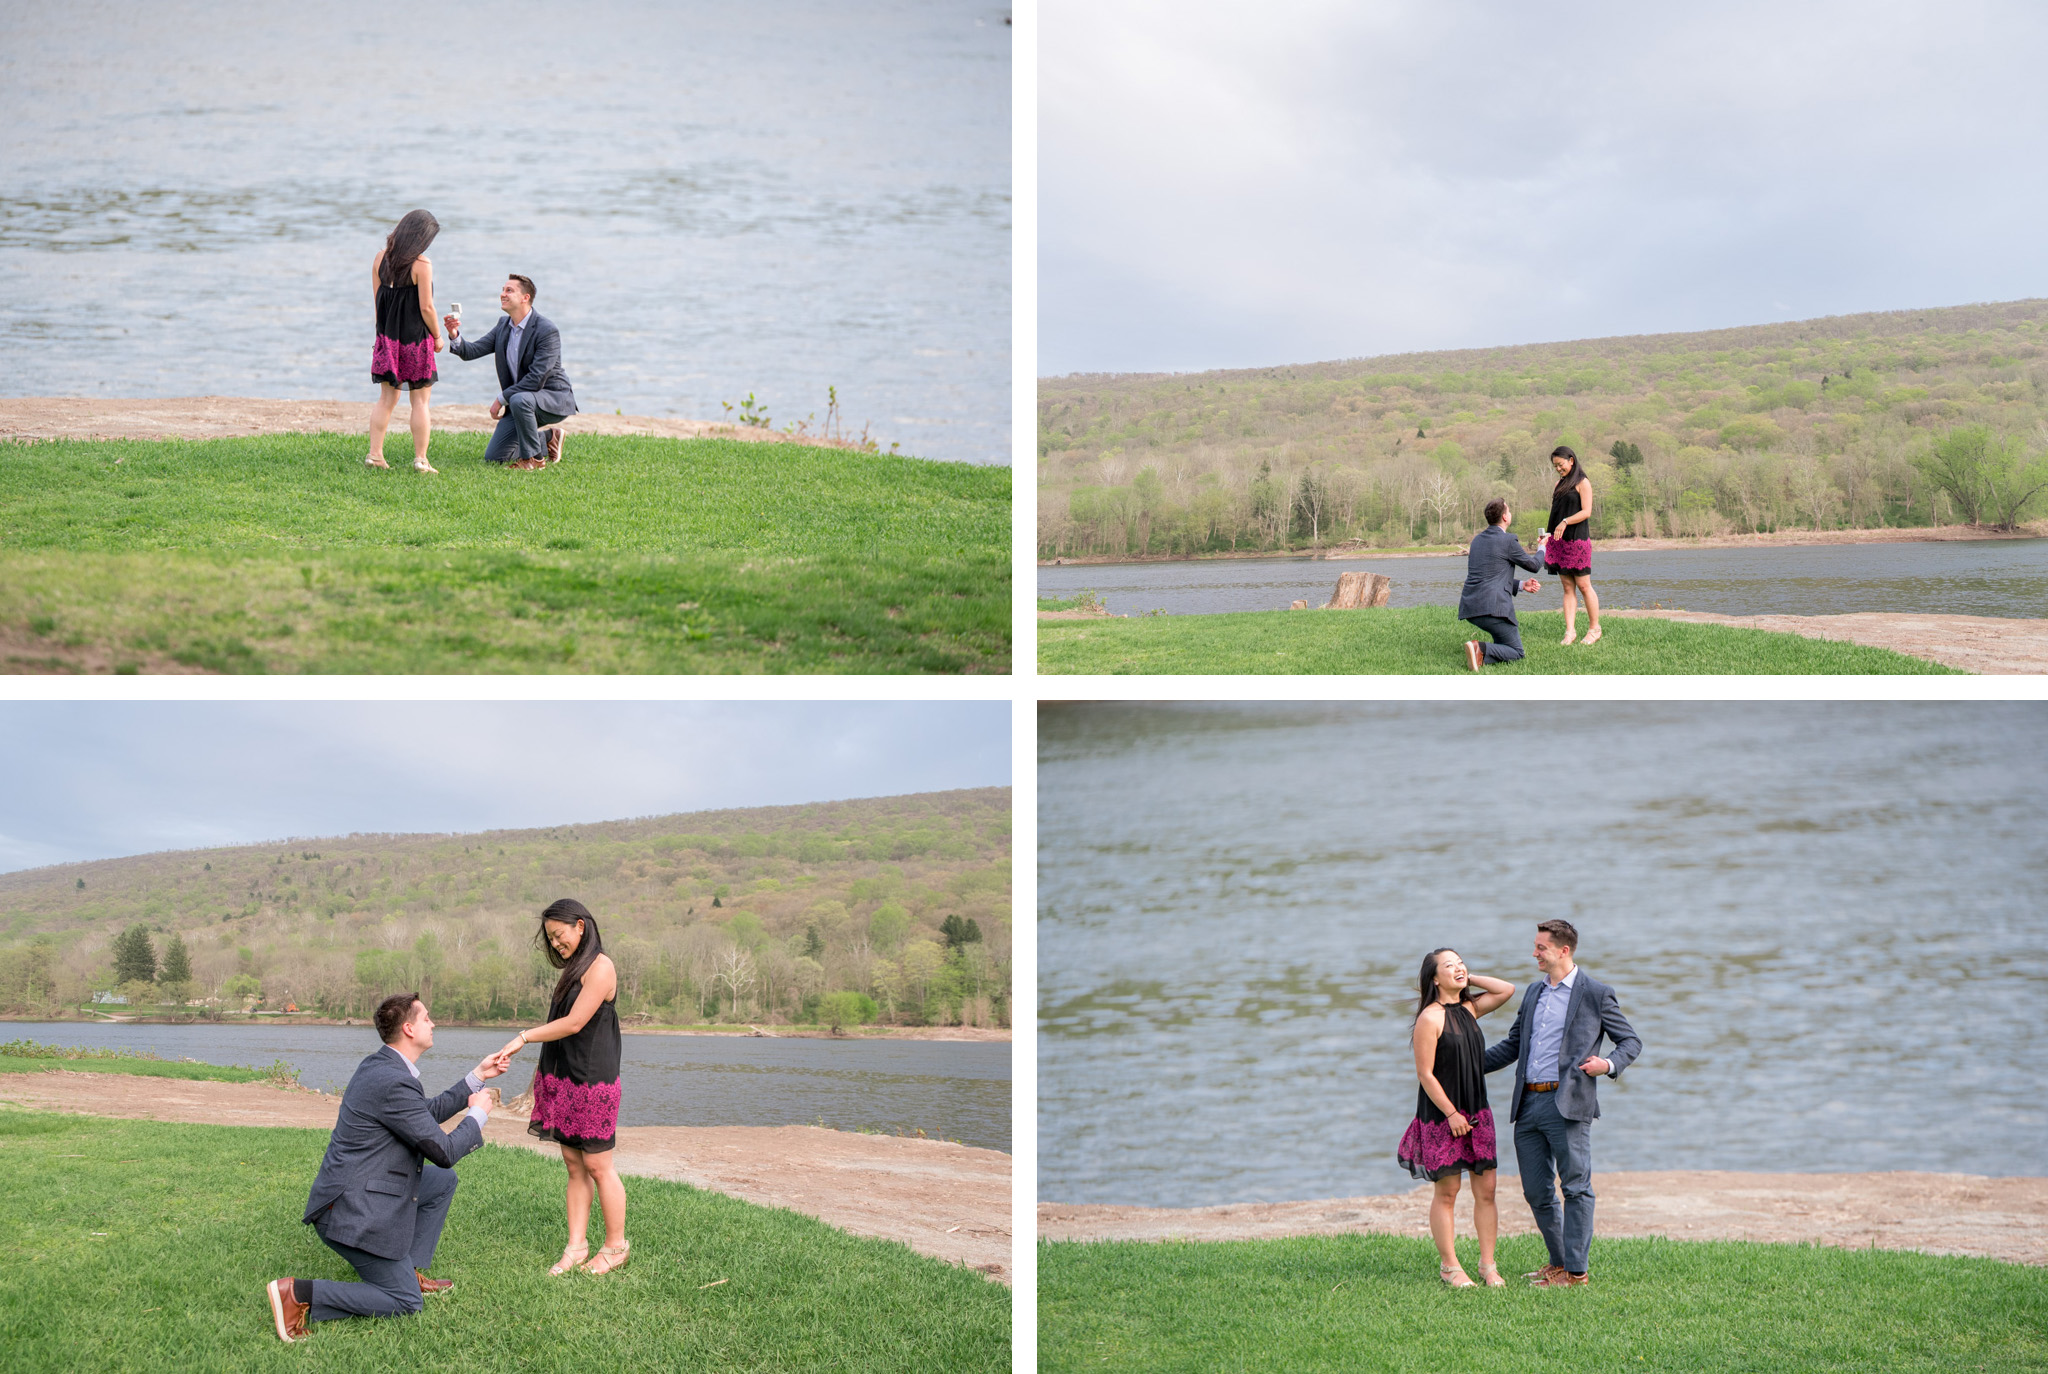 suprise proposal at shawnee inn poconos PA